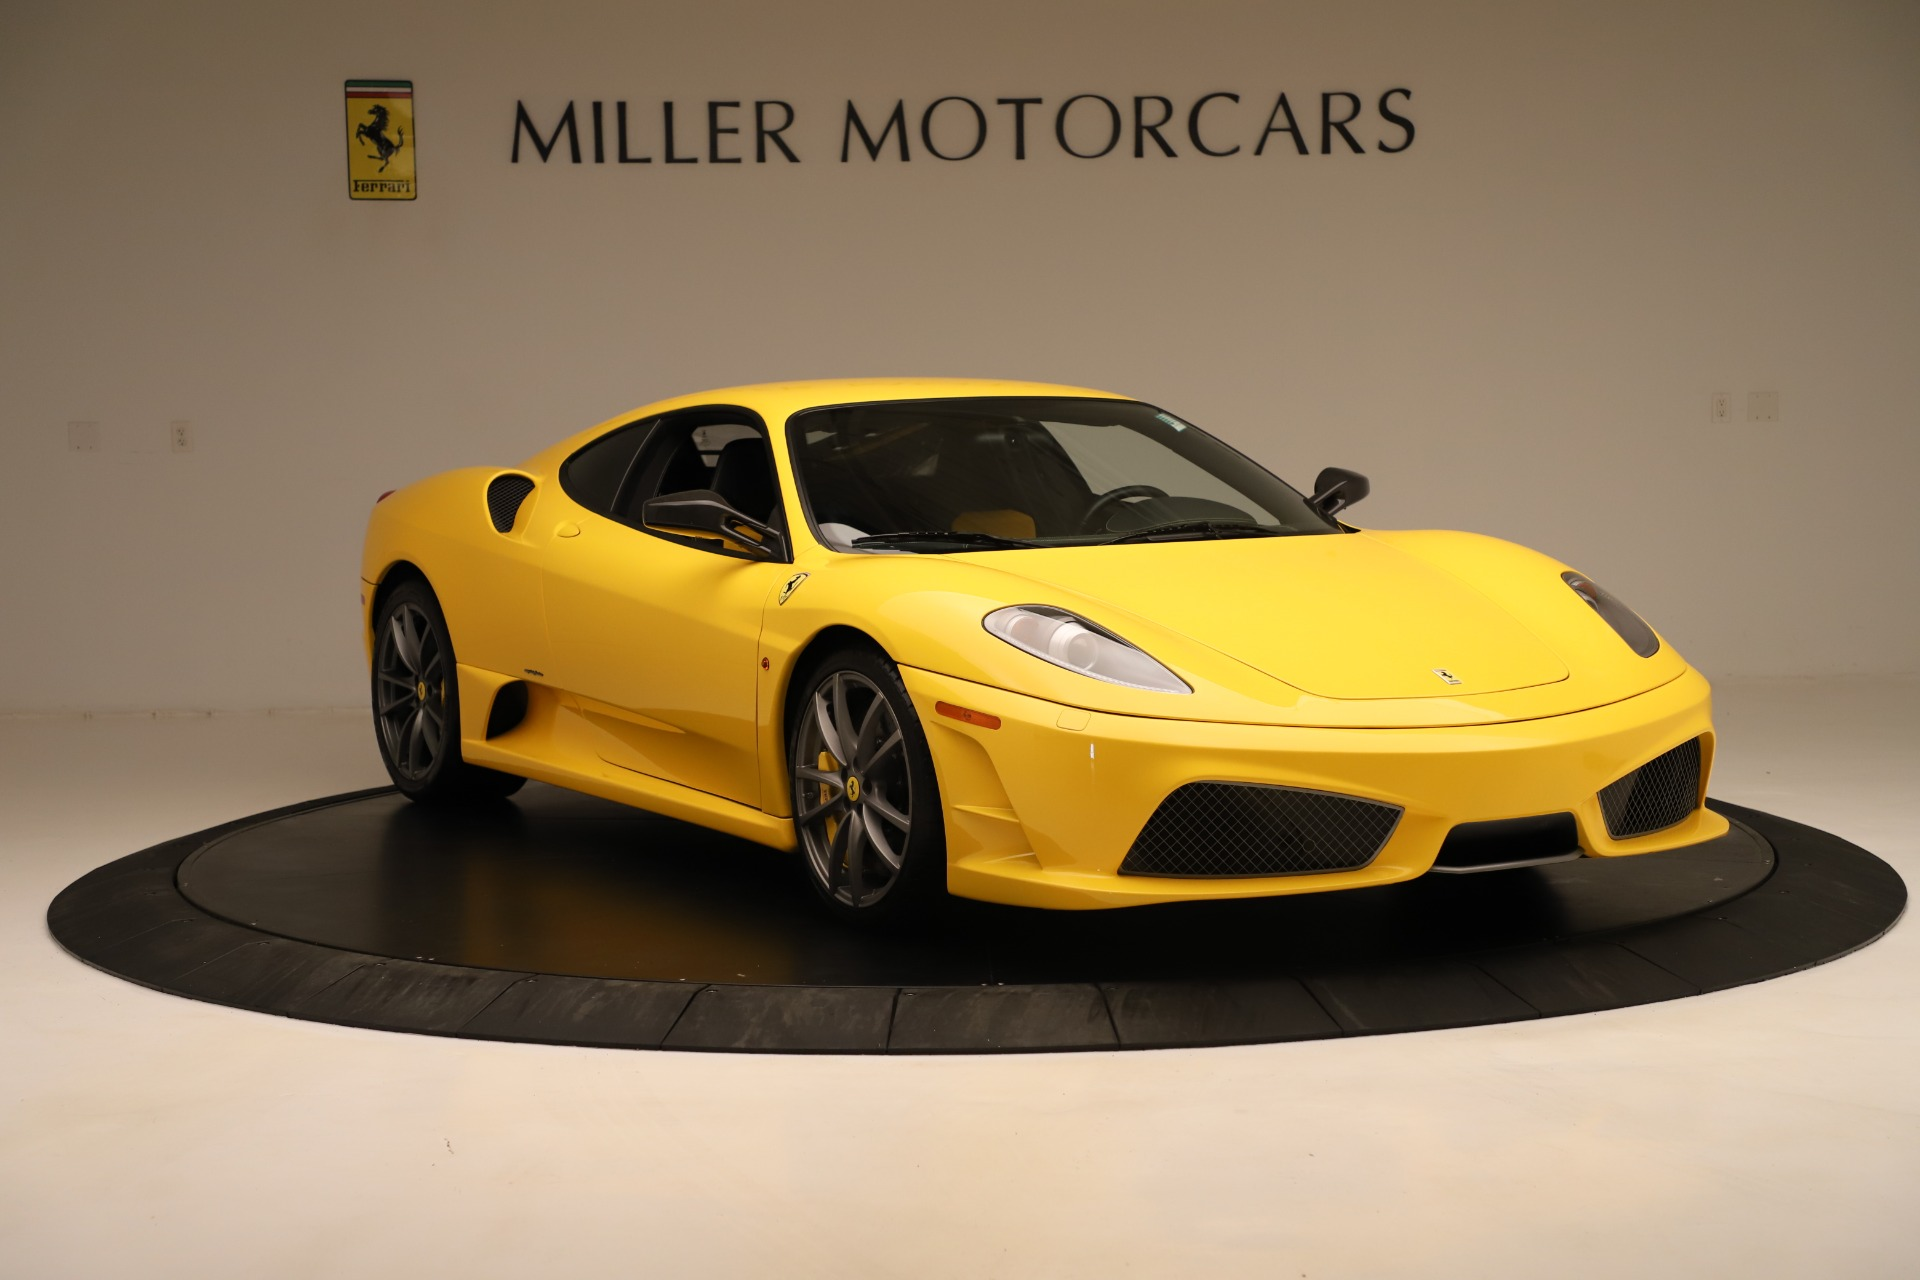 Used 2008 Ferrari F430 Scuderia For Sale In Greenwich, CT 3319_p11